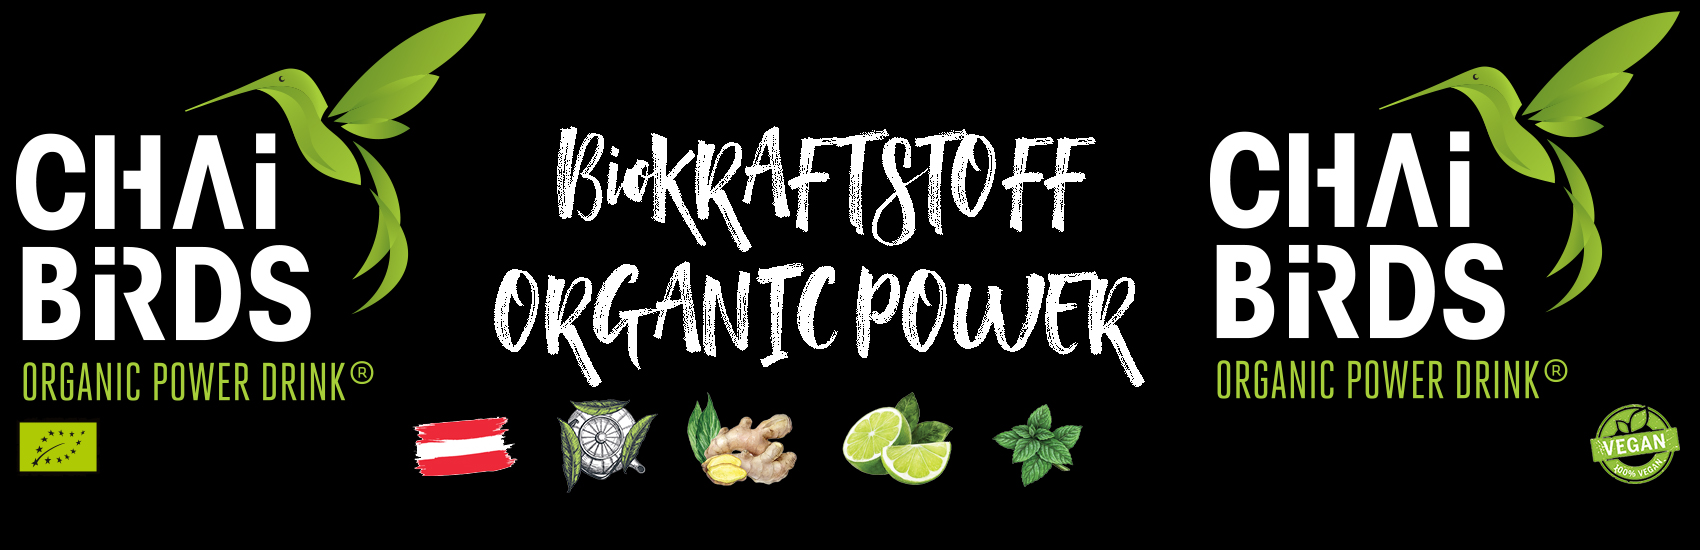 BiO KRAFTSTOFF | ORGANIC POWER DRINK | CHAi BiRDS